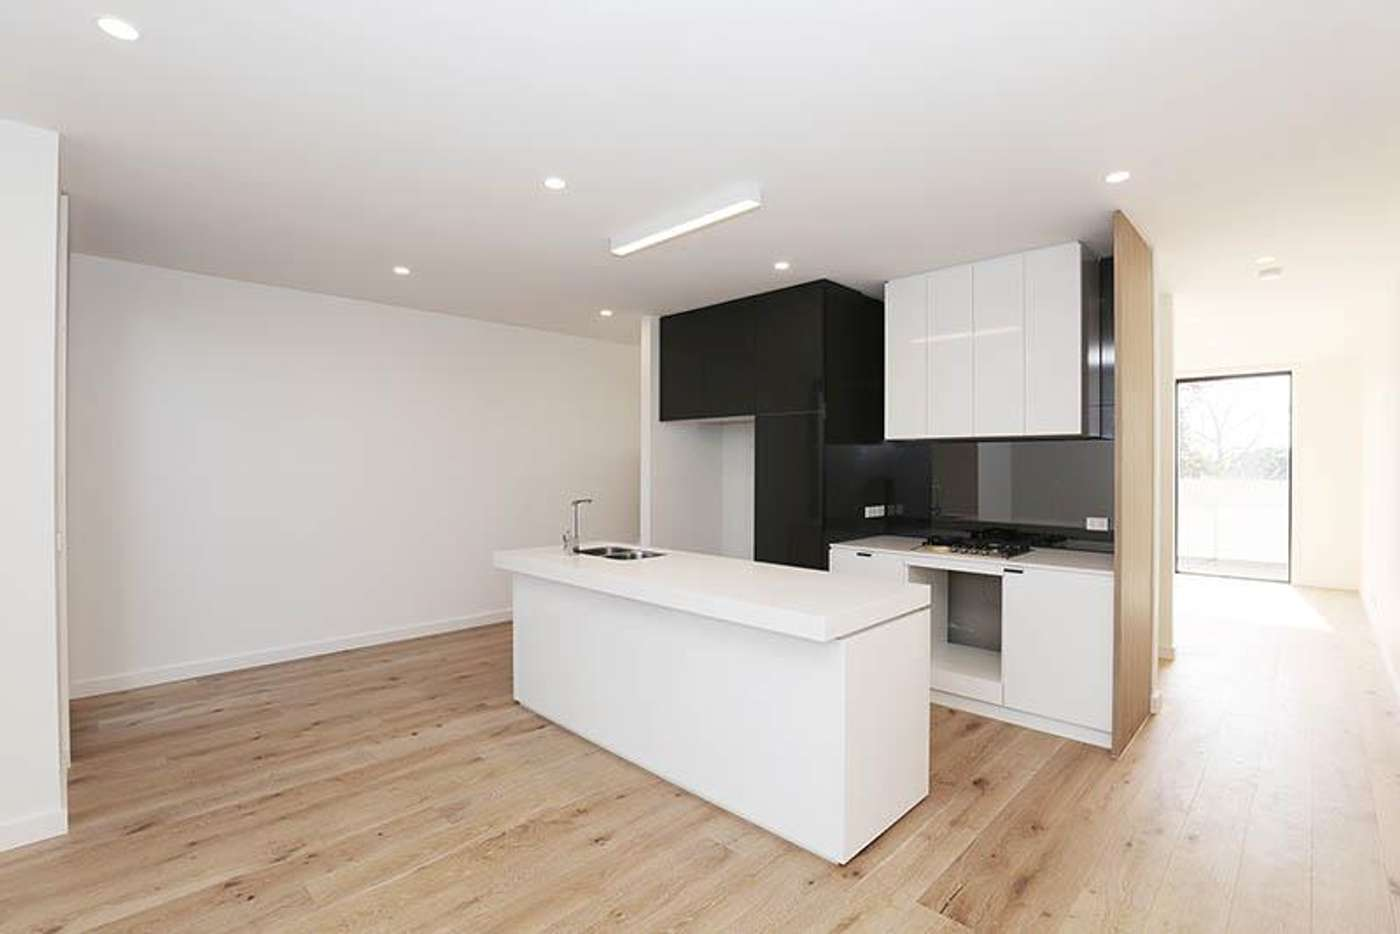 Main view of Homely townhouse listing, 8 Harvest Court, Doncaster VIC 3108